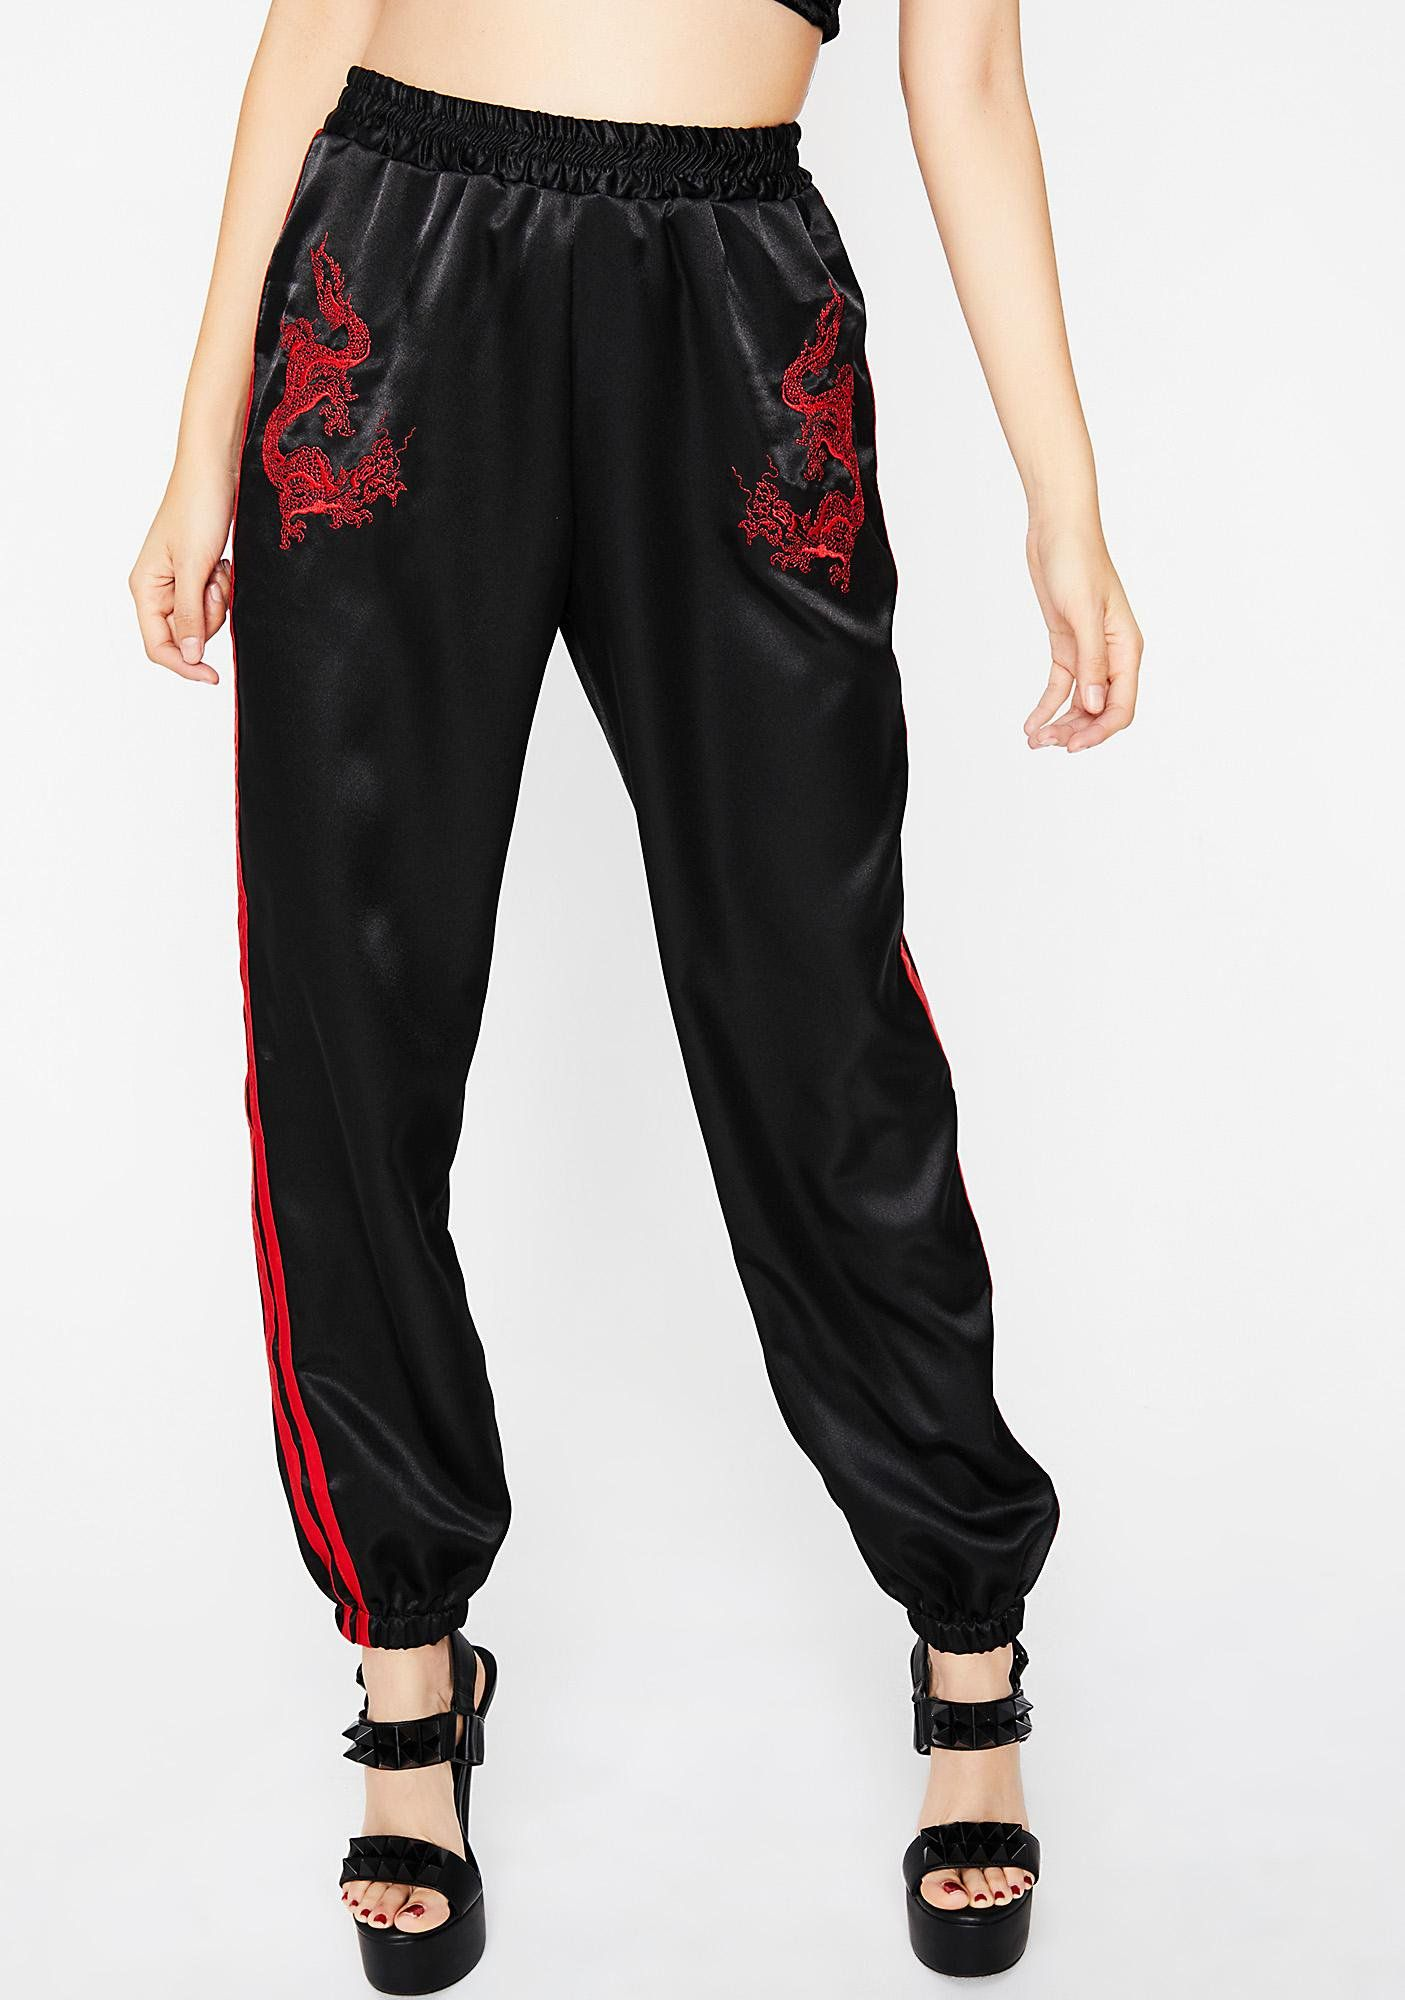 o mighty dragon track pants you can slay my dragon any day of the